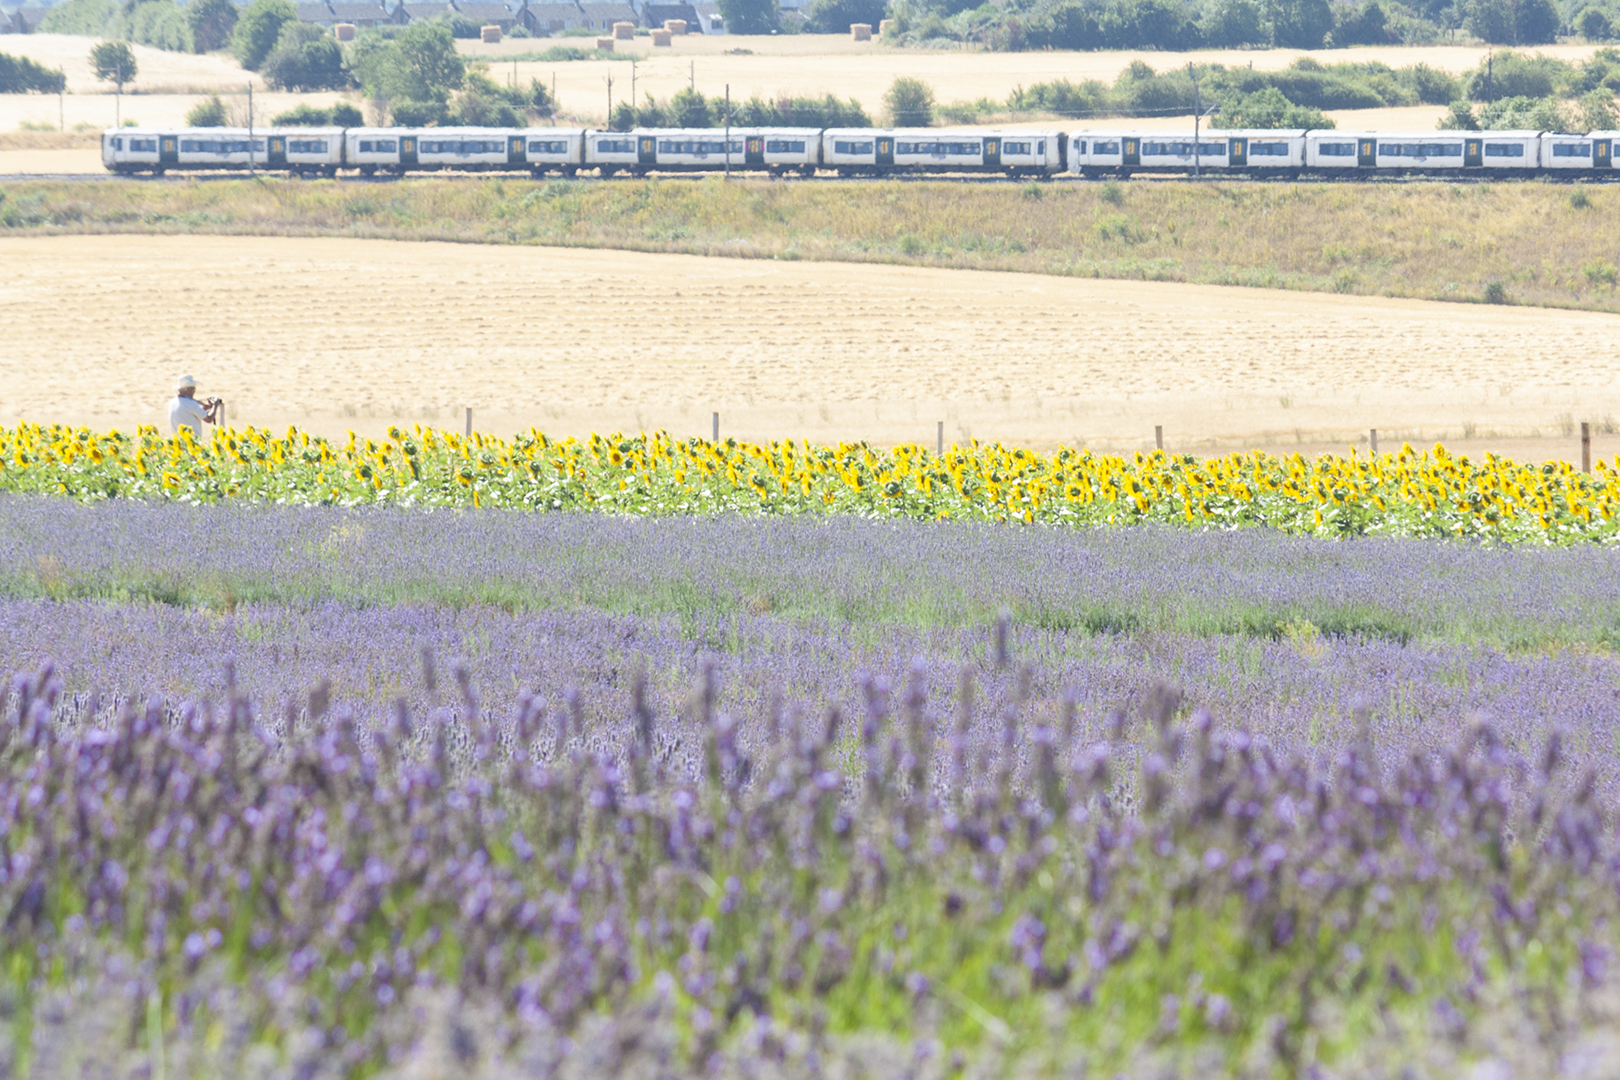 sunflower train.jpg